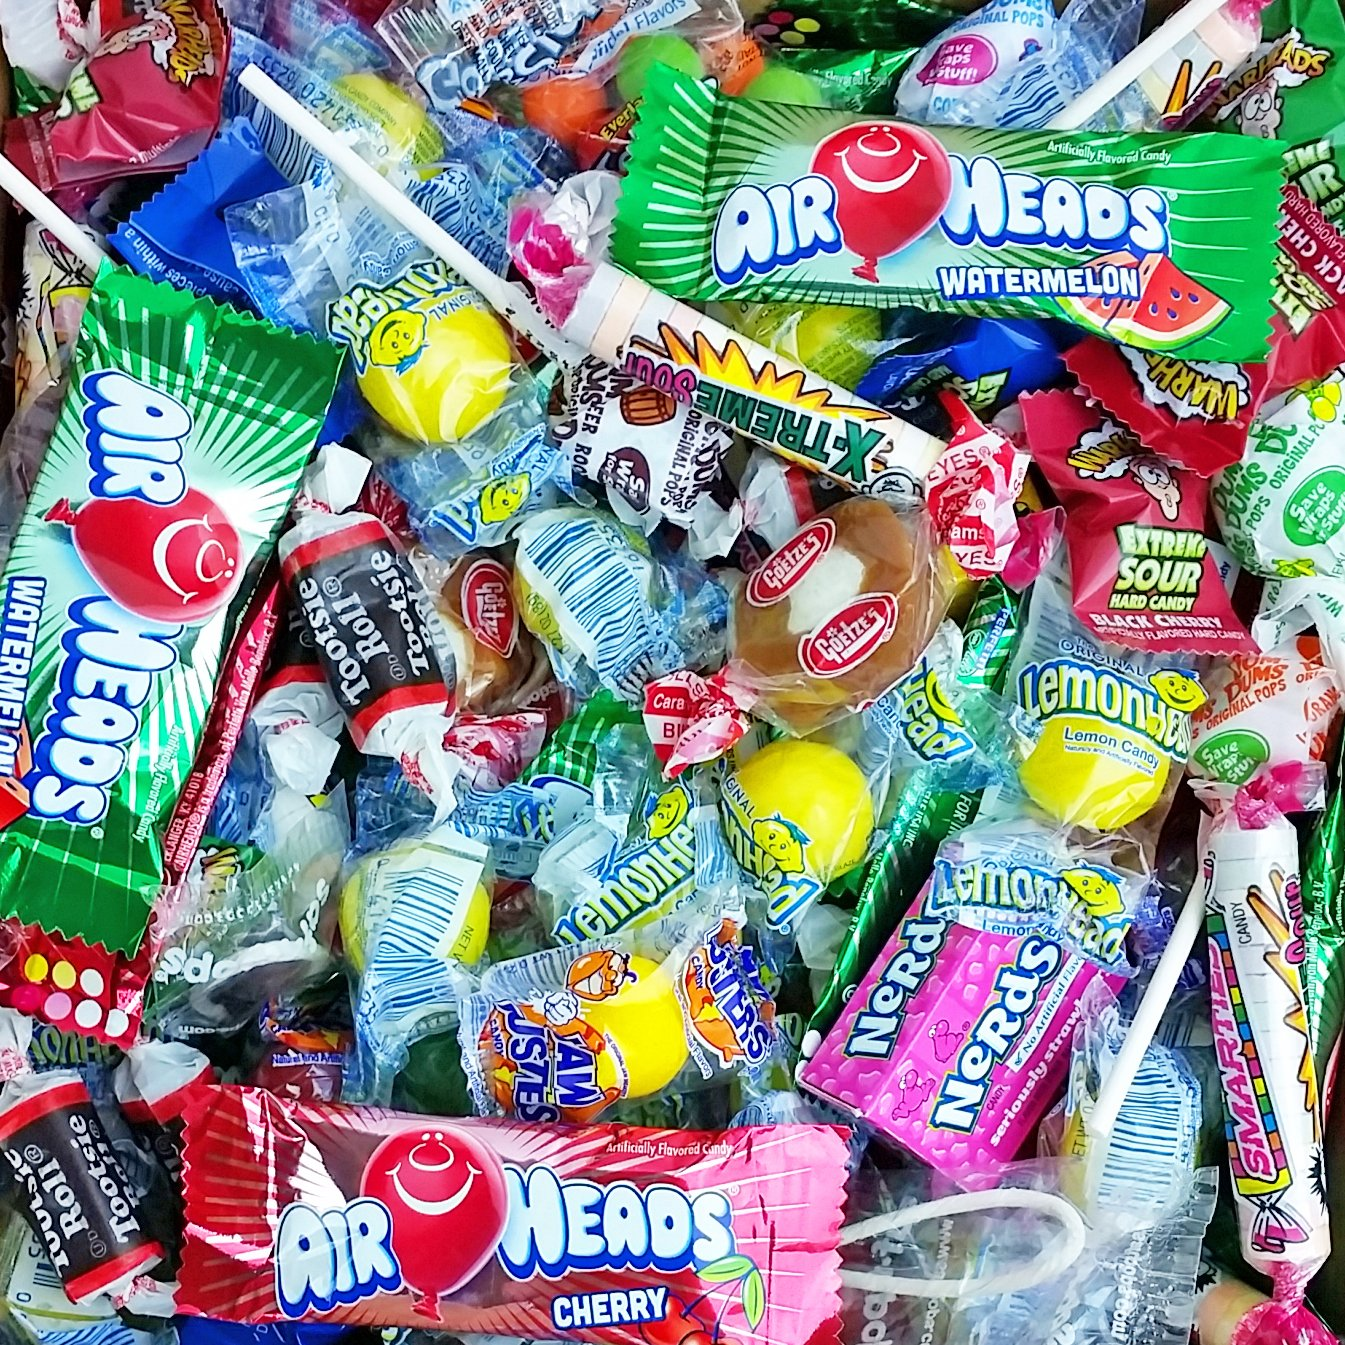 Assorted Candy Party Mix, 6x6x6 Bulk Box (Appx. 4 Lbs): Fire Balls, Airheads, Jawbusters, Laffy Taffys, Tootsie Rolls and Much More of Your Favorite Candy! by A Great Surprise